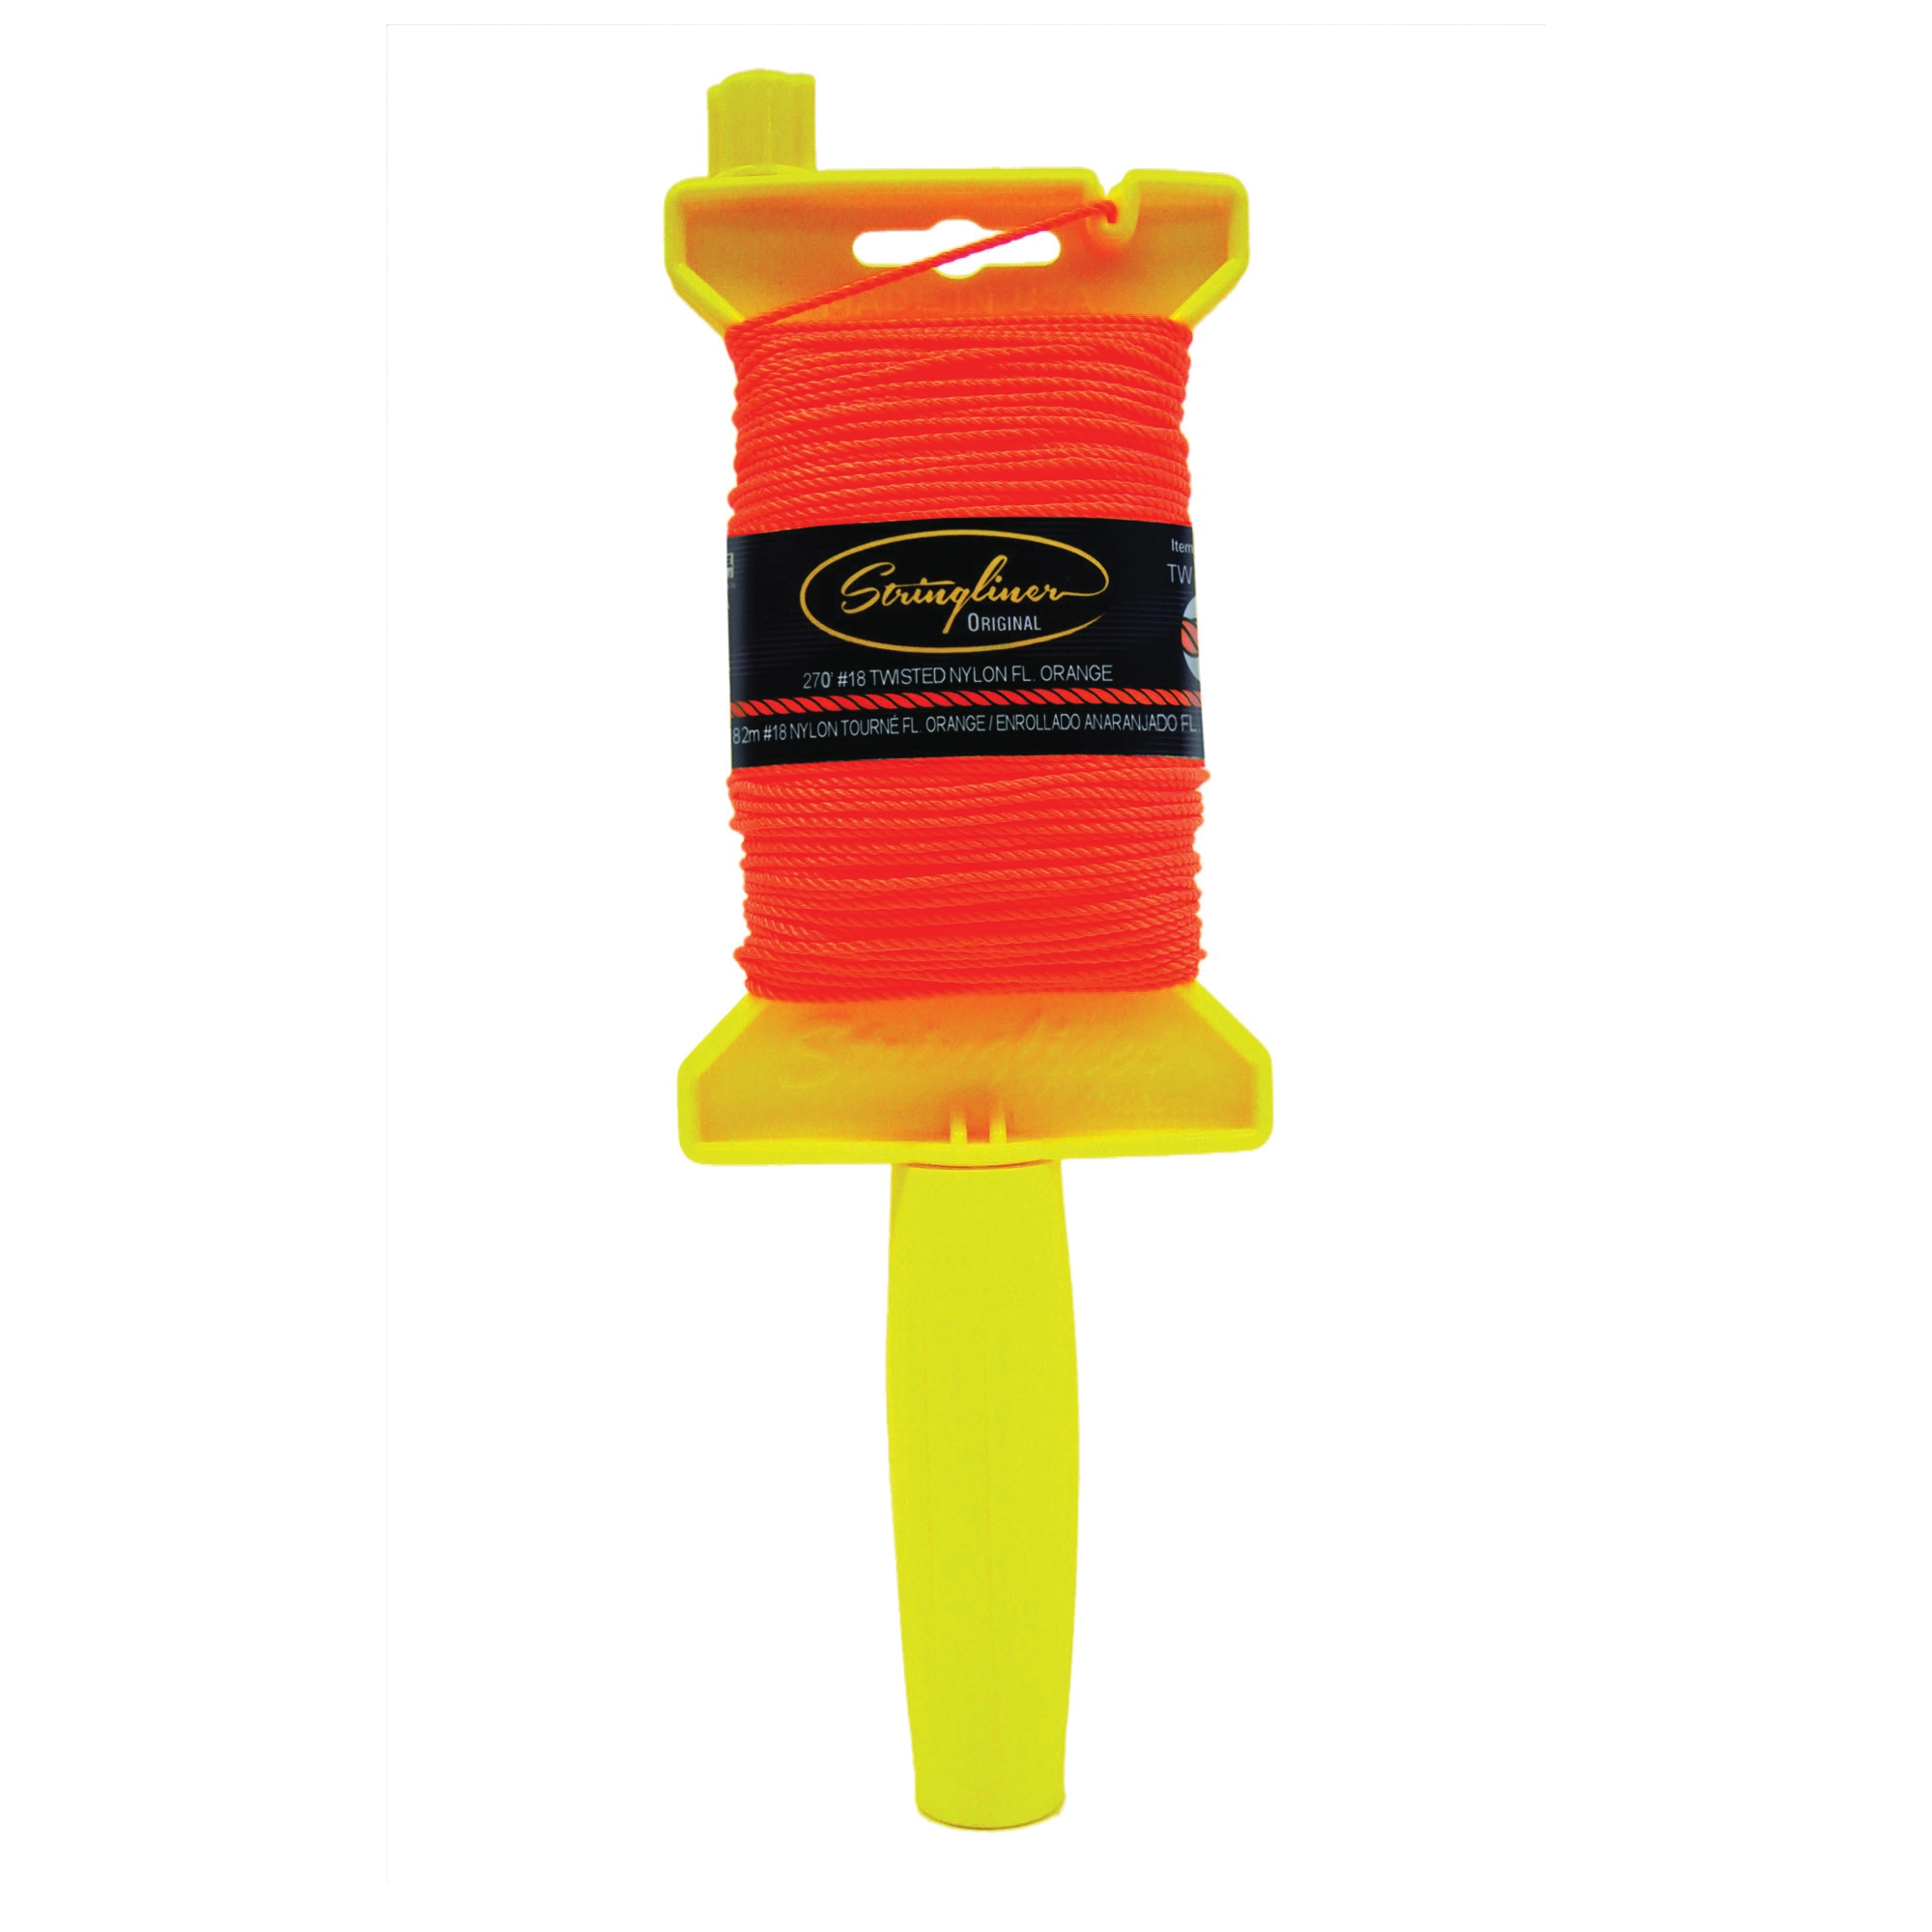 Picture of Stringliner 11406 Line Reel, 270 ft L Line, Fluorescent Orange Line